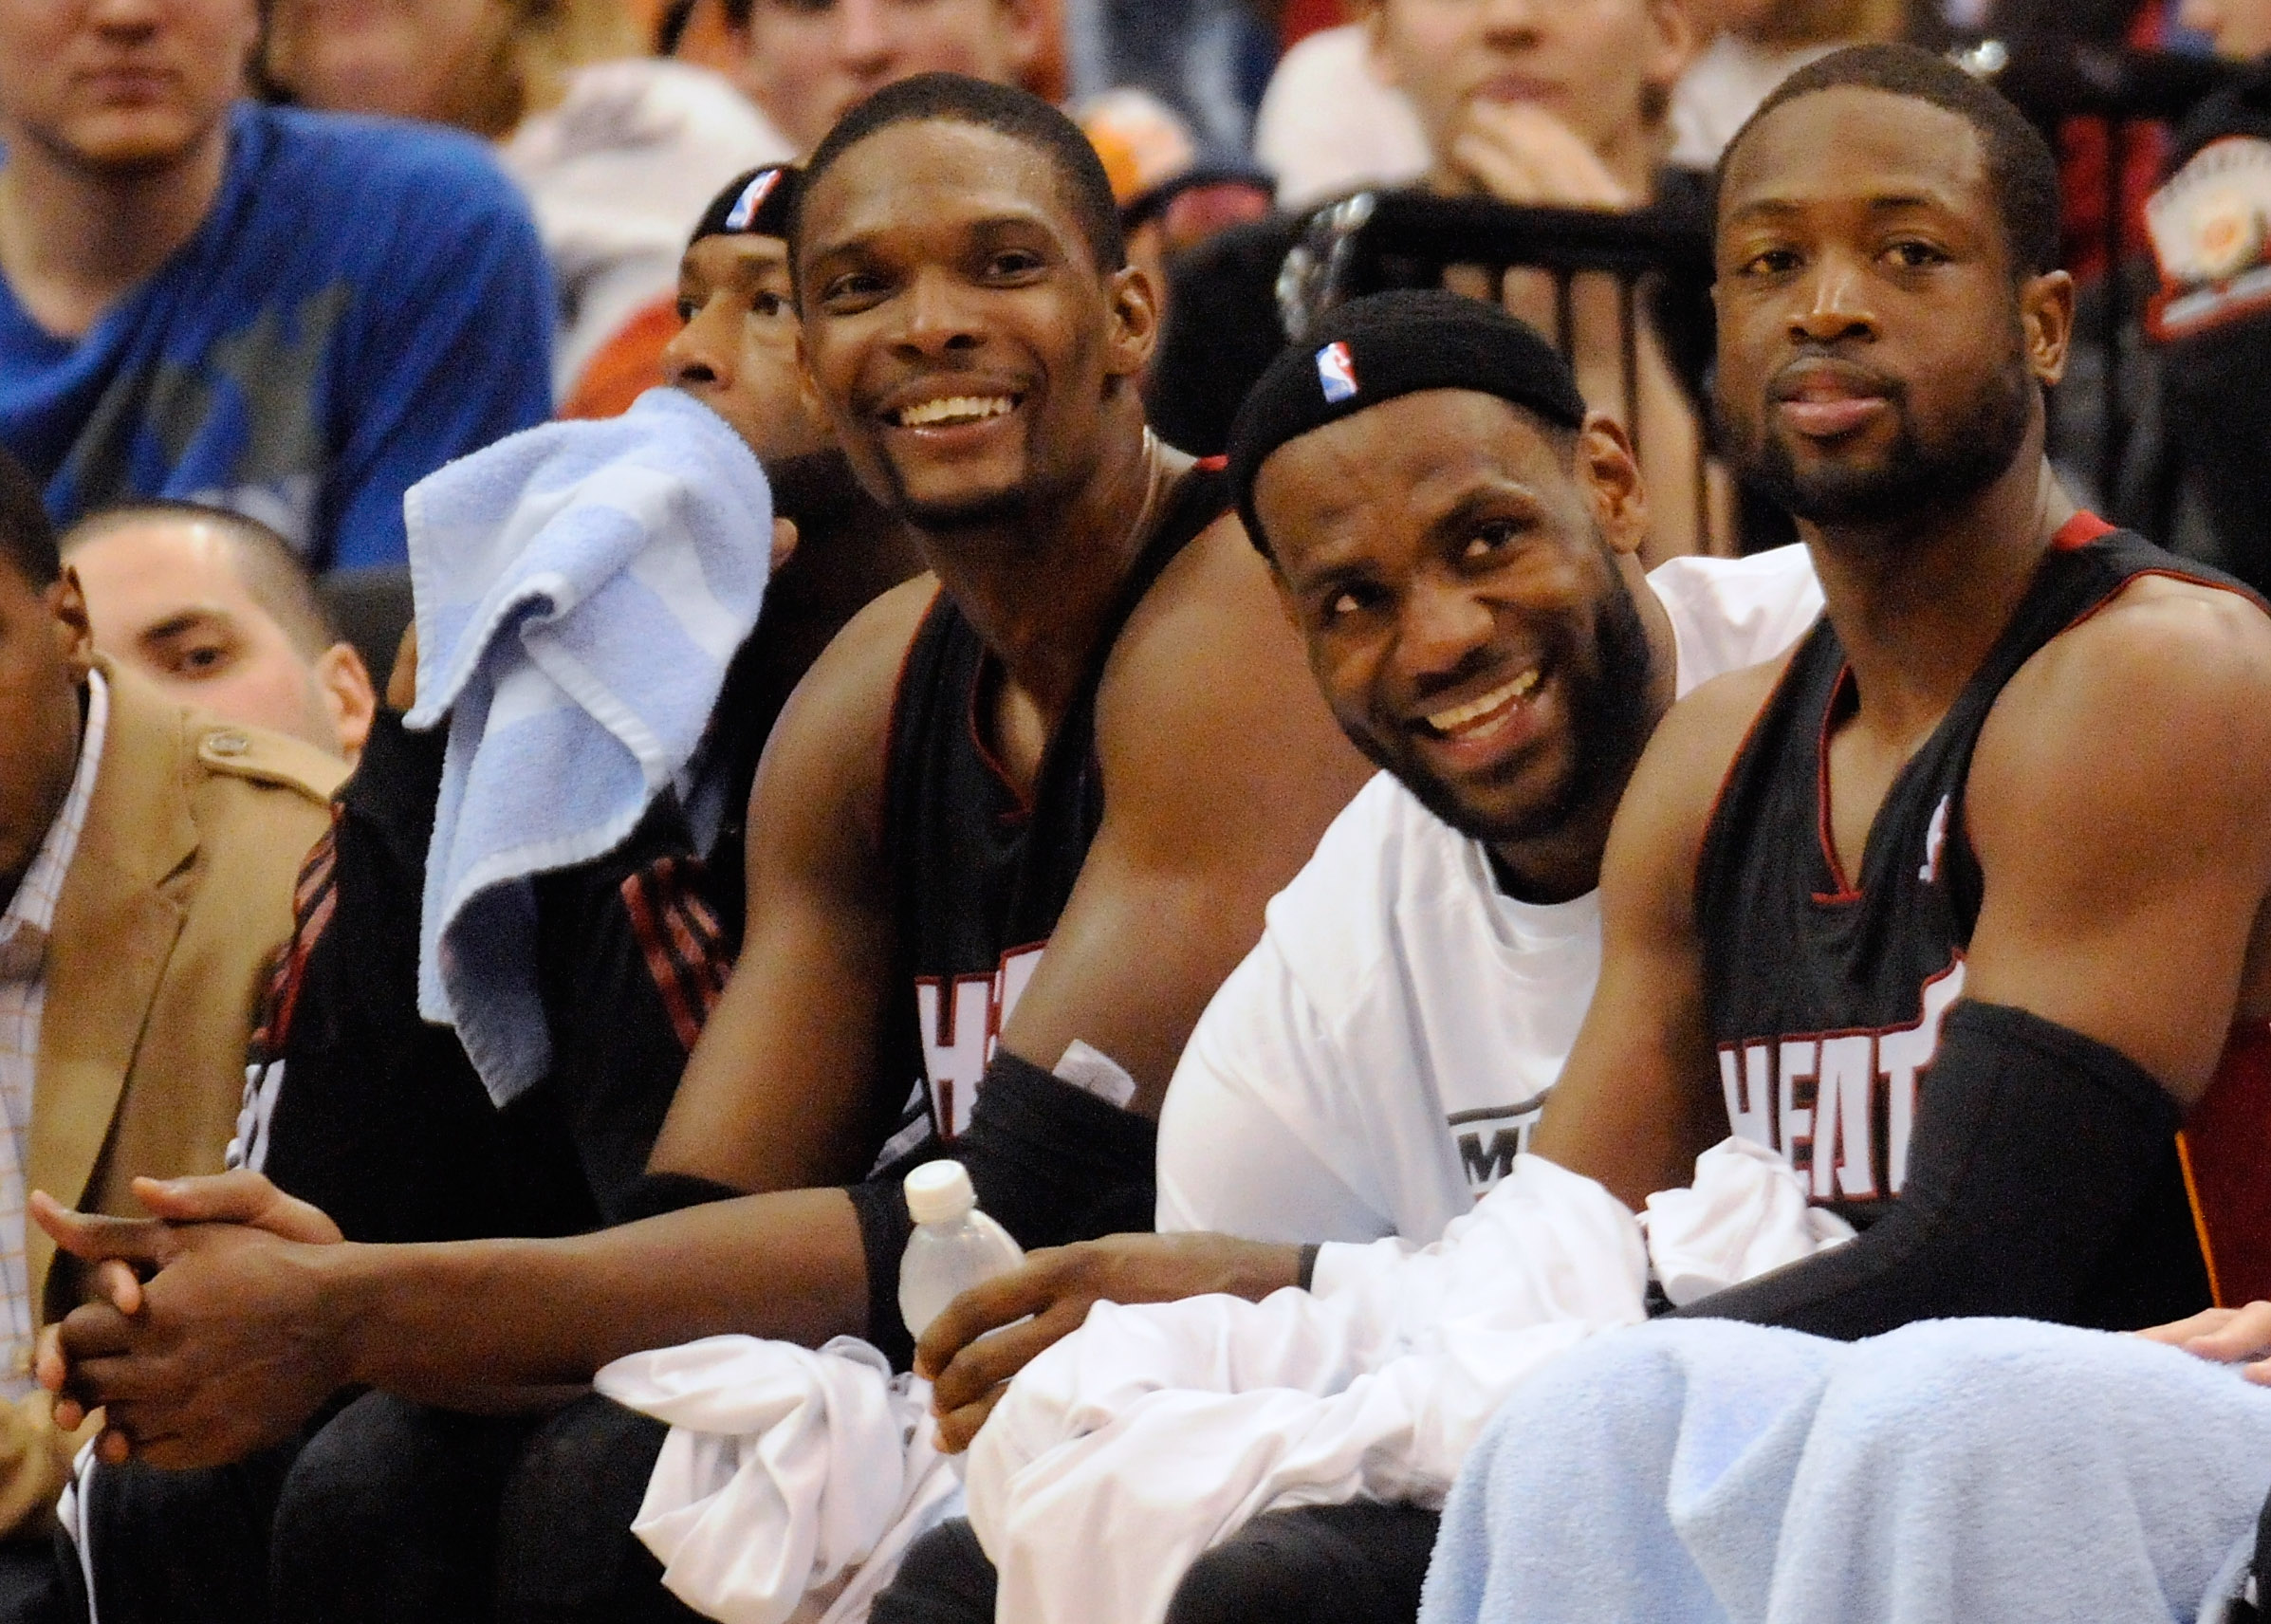 MINNEAPOLIS, MN - APRIL 1: Chris Bosh #1, LeBron James #6 and Dwyane Wade #3 of the Miami Heat sit on the bench in the final minutes of a basketball game against the Minnesota Timberwolves at Target Center on April 1, 2011 in Minneapolis, Minnesota. Heat